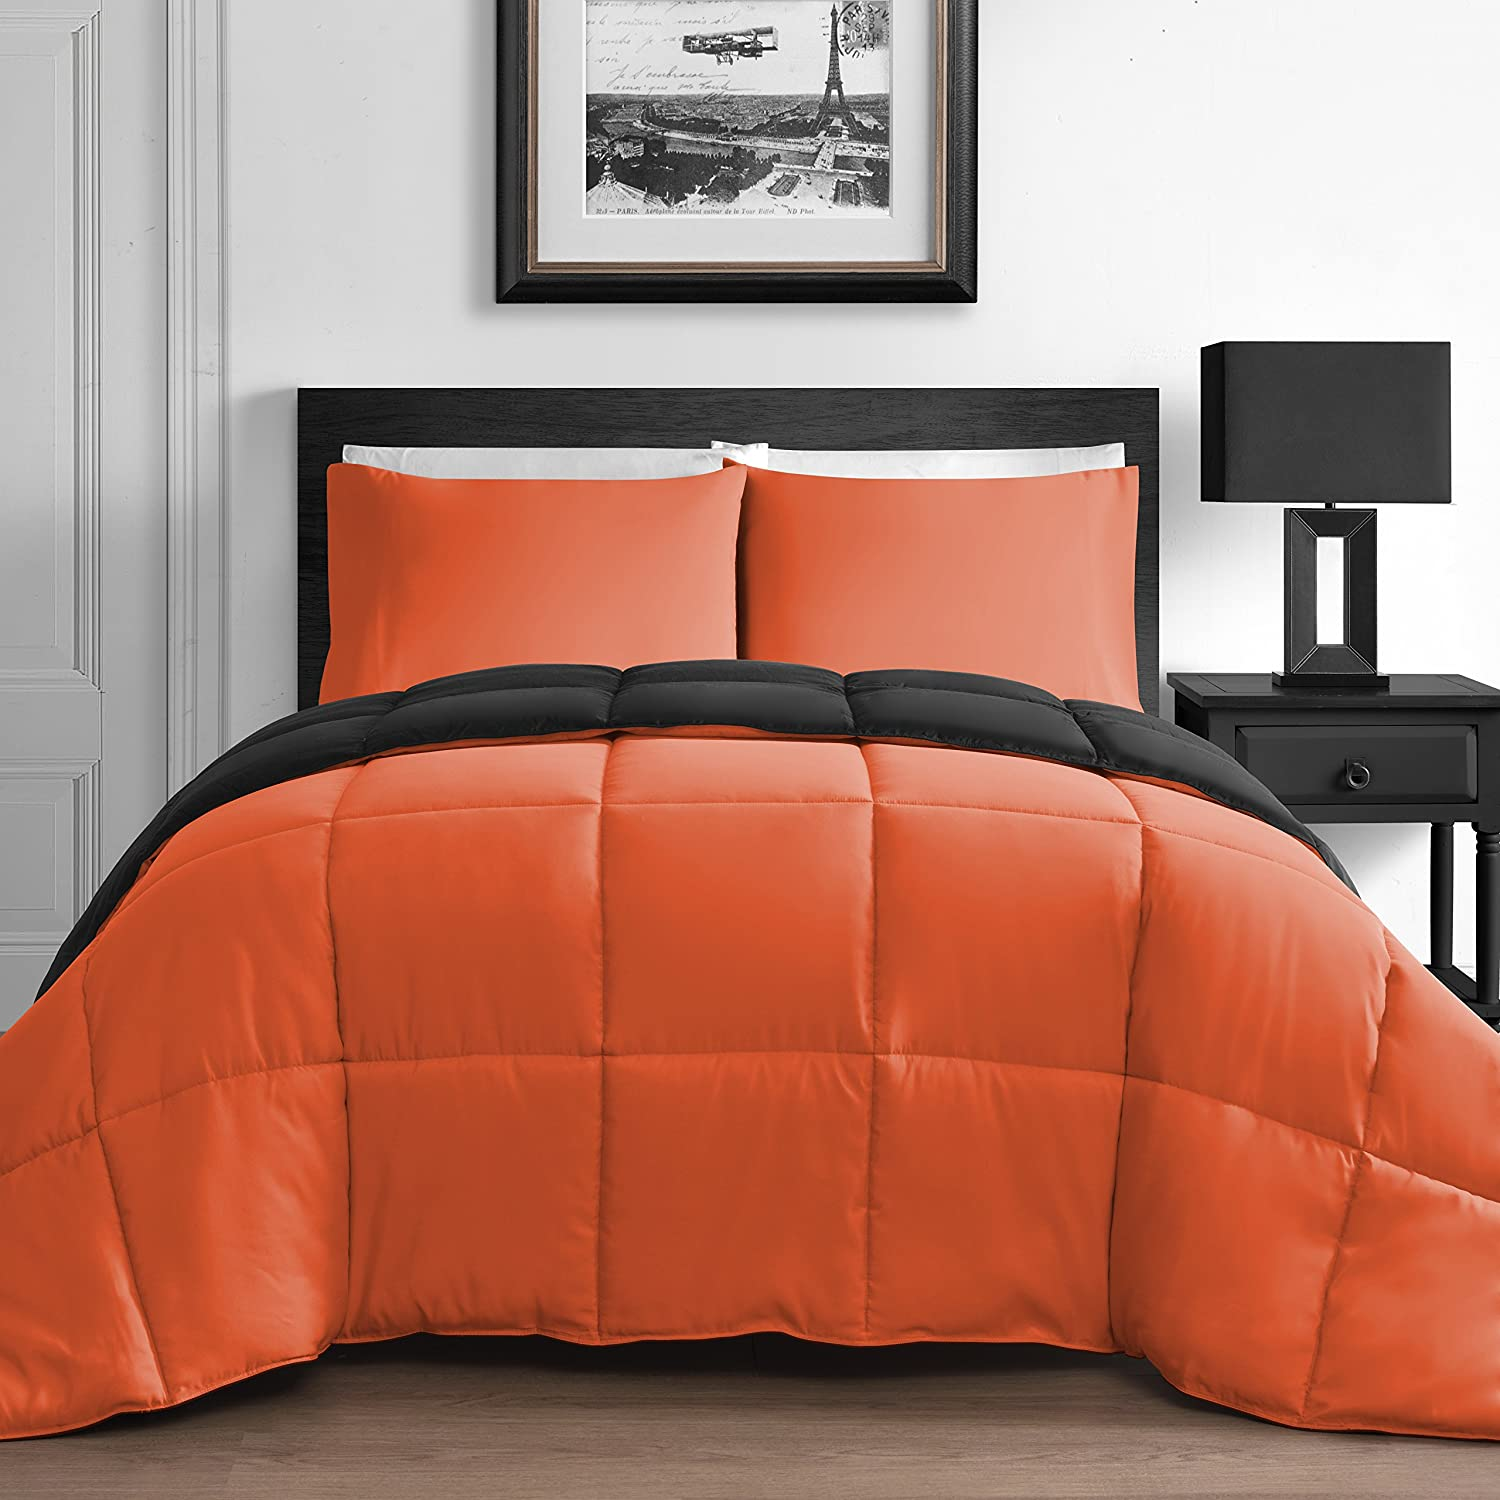 Brown and orange bedding - Modern 3 Piece King Queen Home Reversible Microfiber Comforter Set